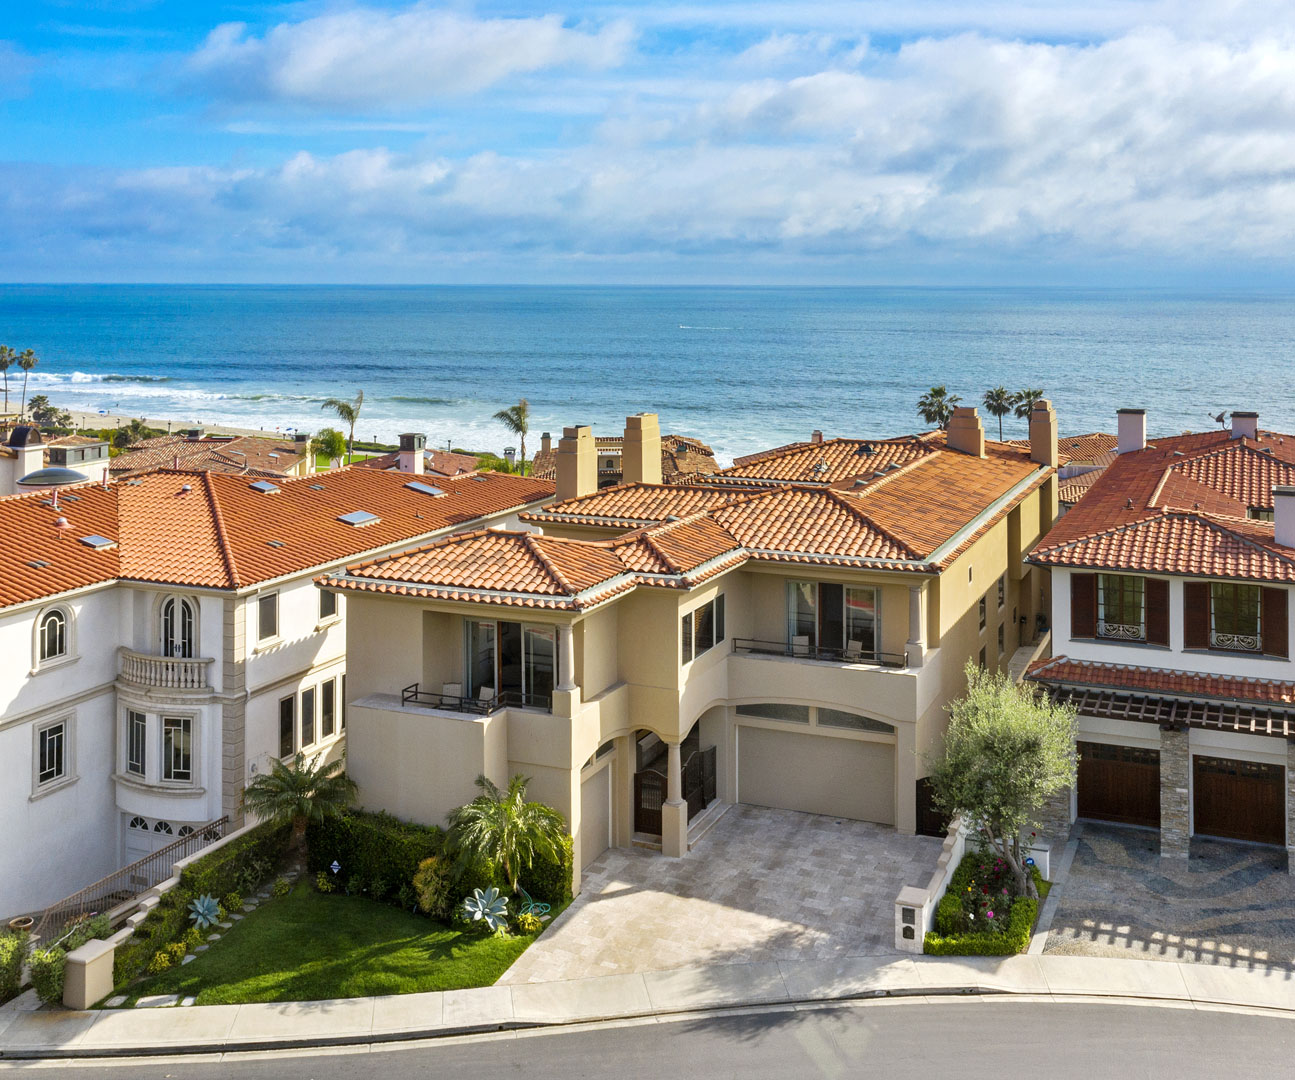 30 Ritz Cove Drive,Dana Point, CA 92629